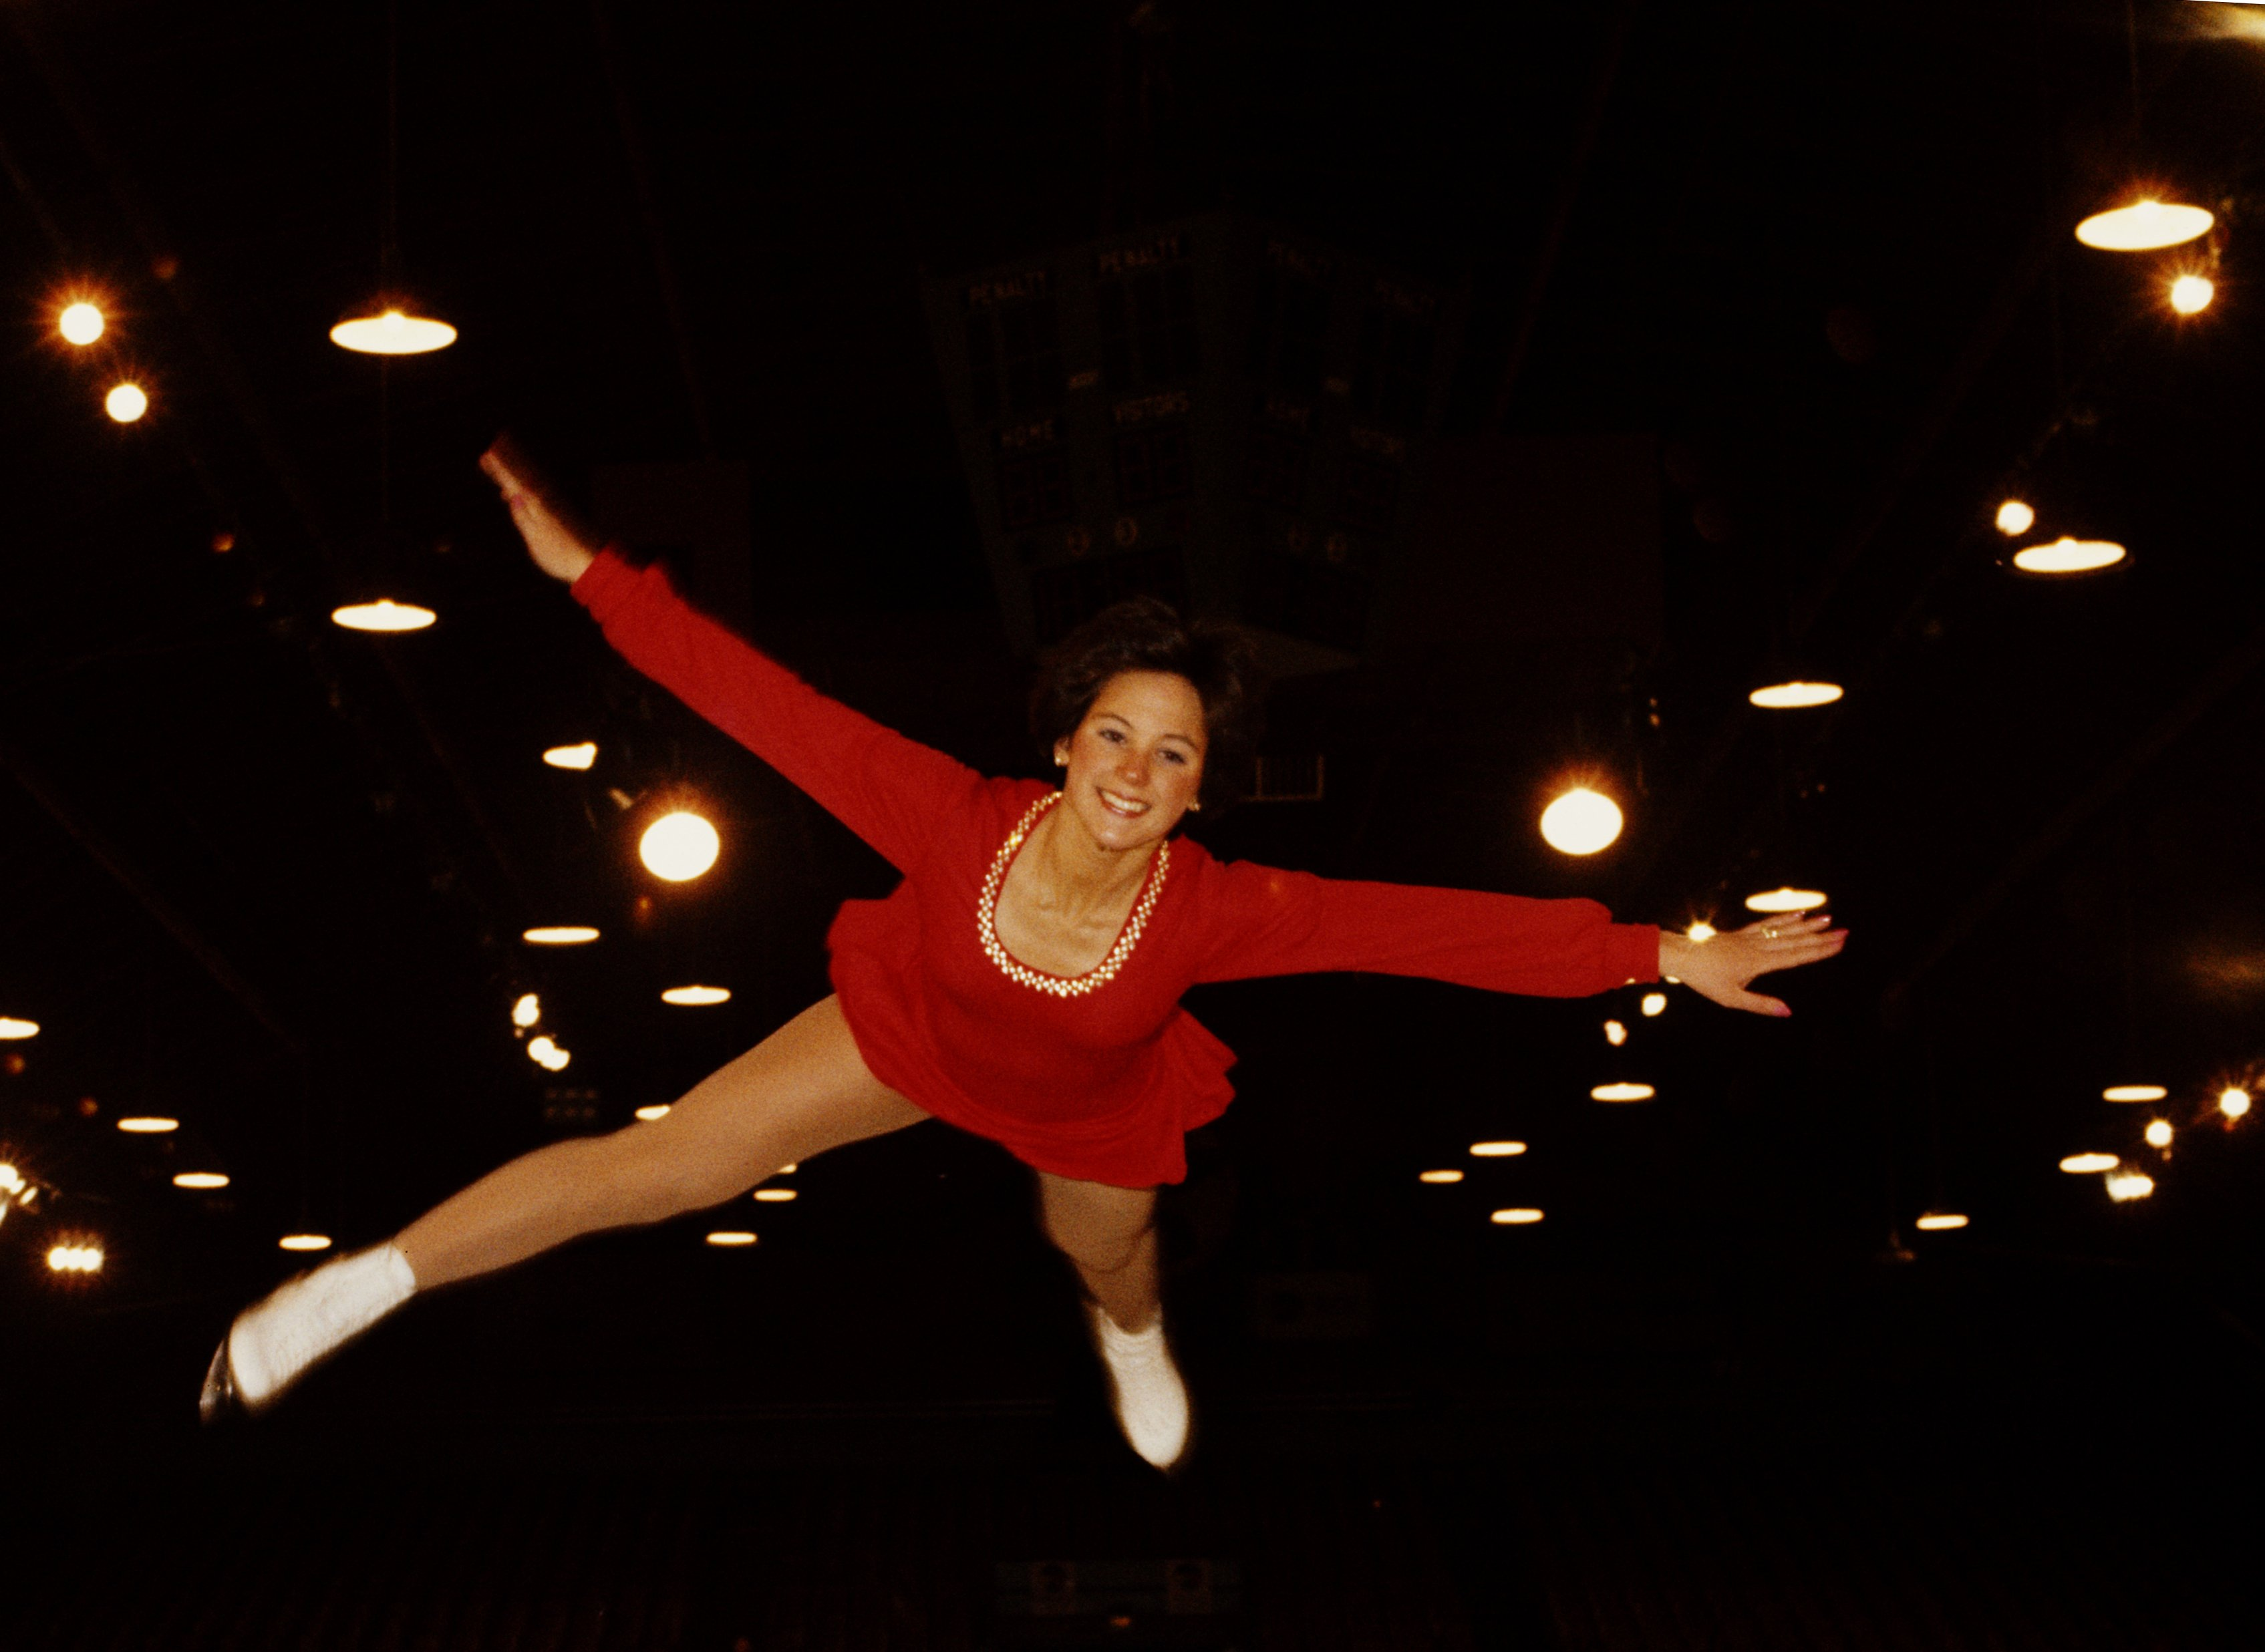 Dorothy Hamill at the World Figure Skating Championships in 1975 in Colorado Springs | Source: Getty Imges